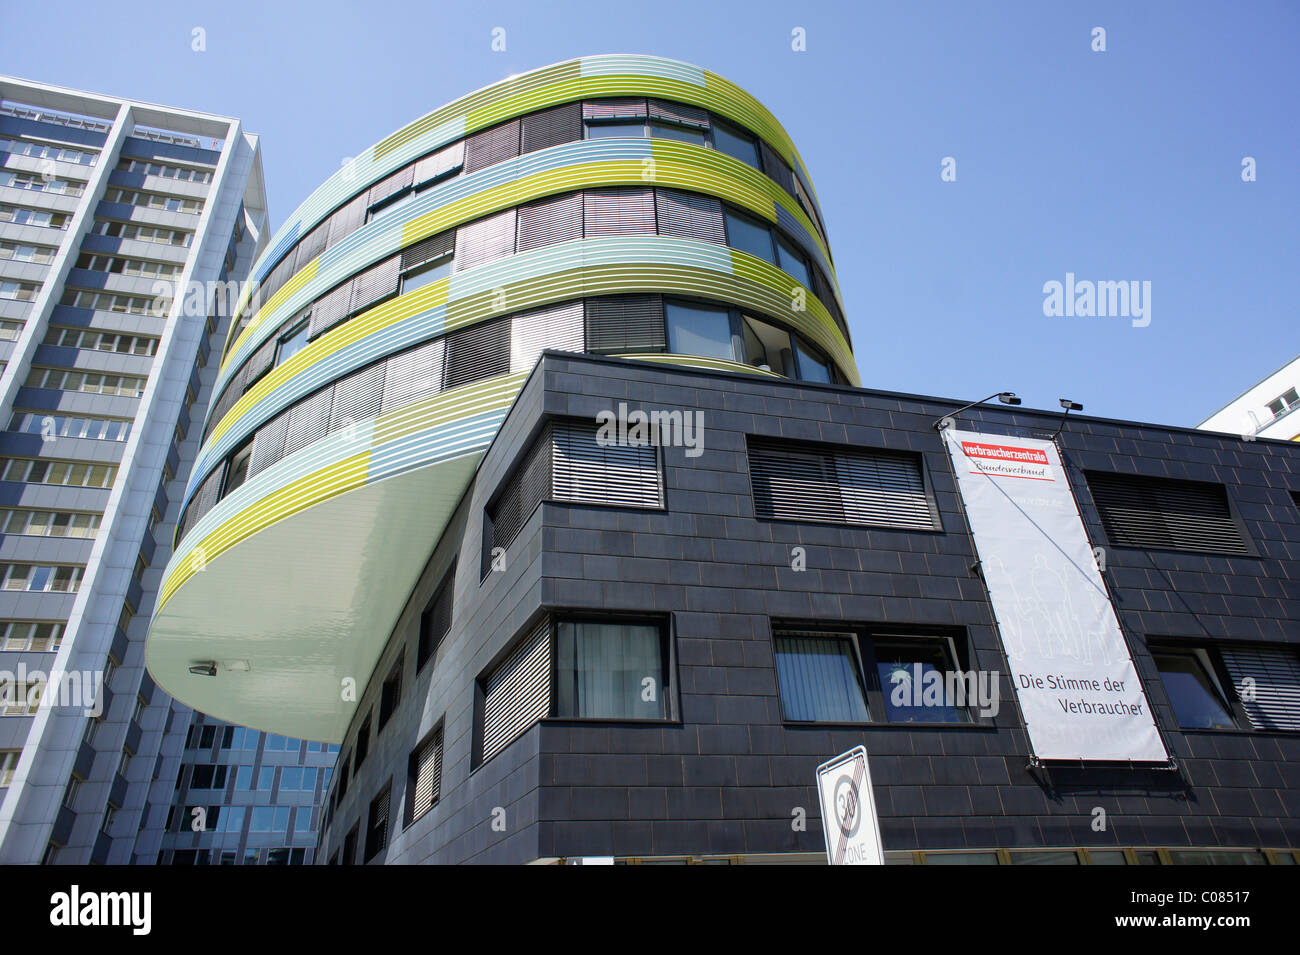 Office of the Federation of Consumer Advice Centers, Berlin, Germany, Europe - Stock Image